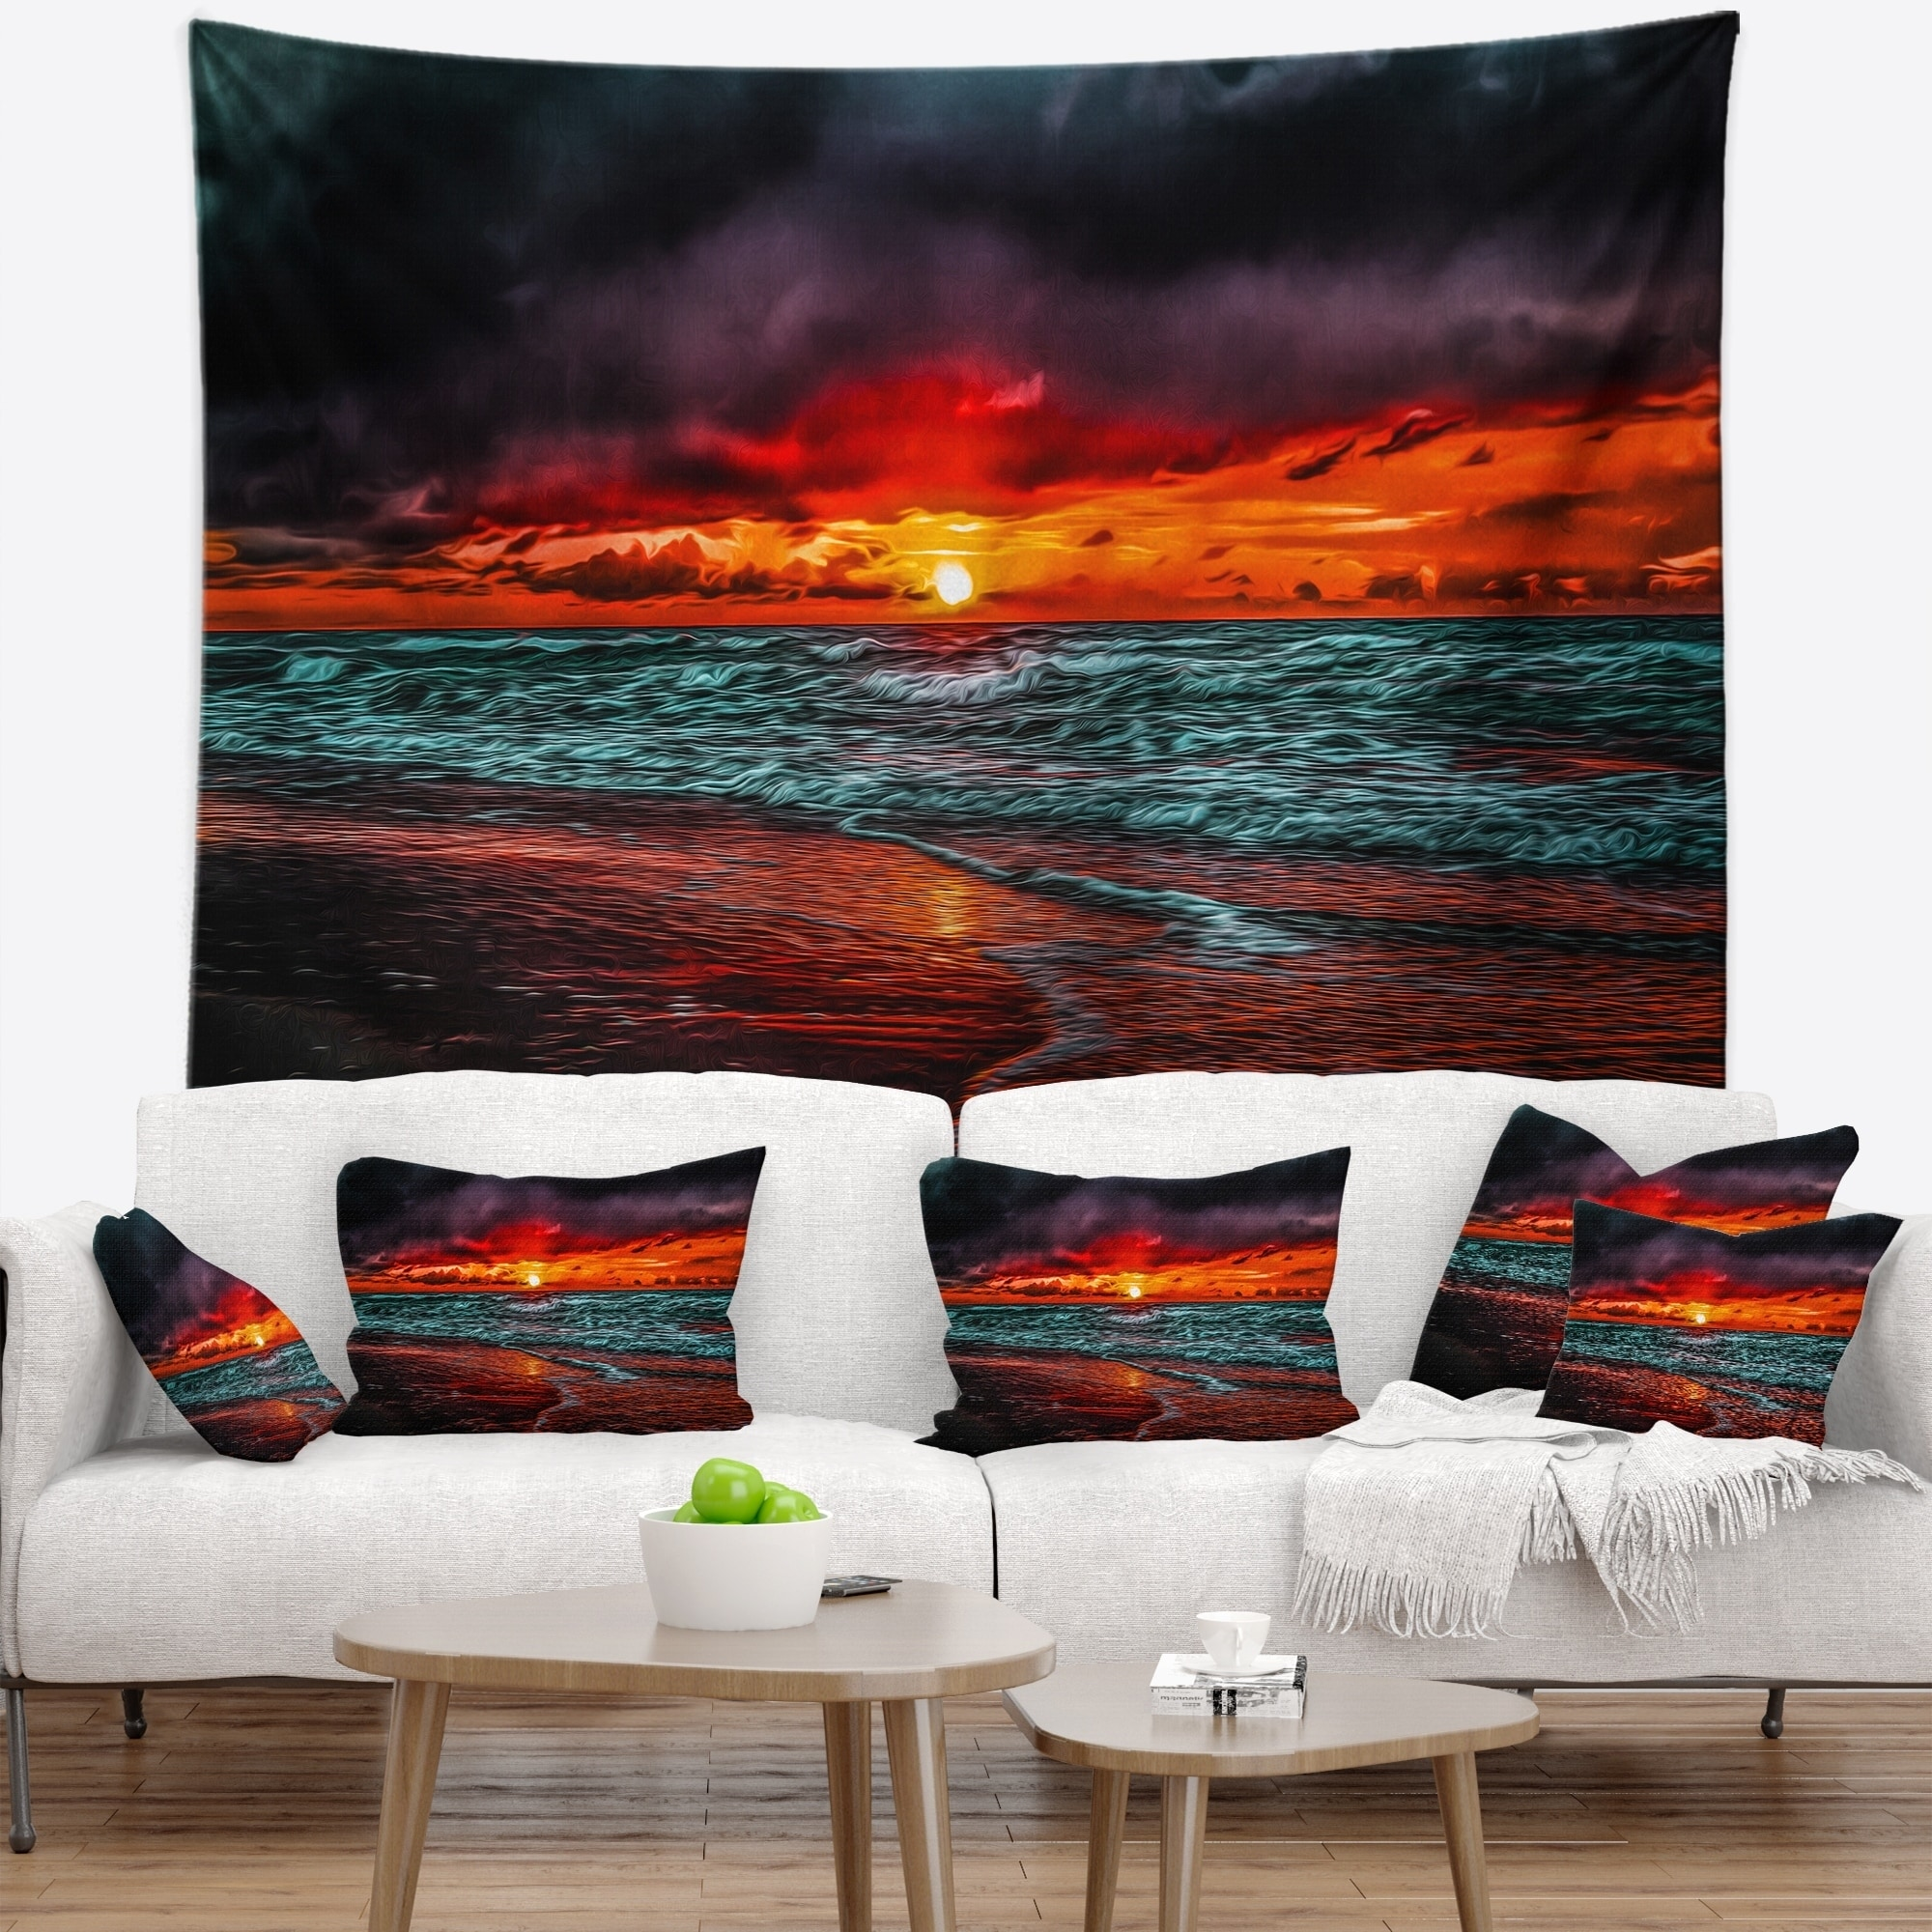 Designart Red Sunset Over Blue Waters Seascape Wall Tapestry Overstock 20886792